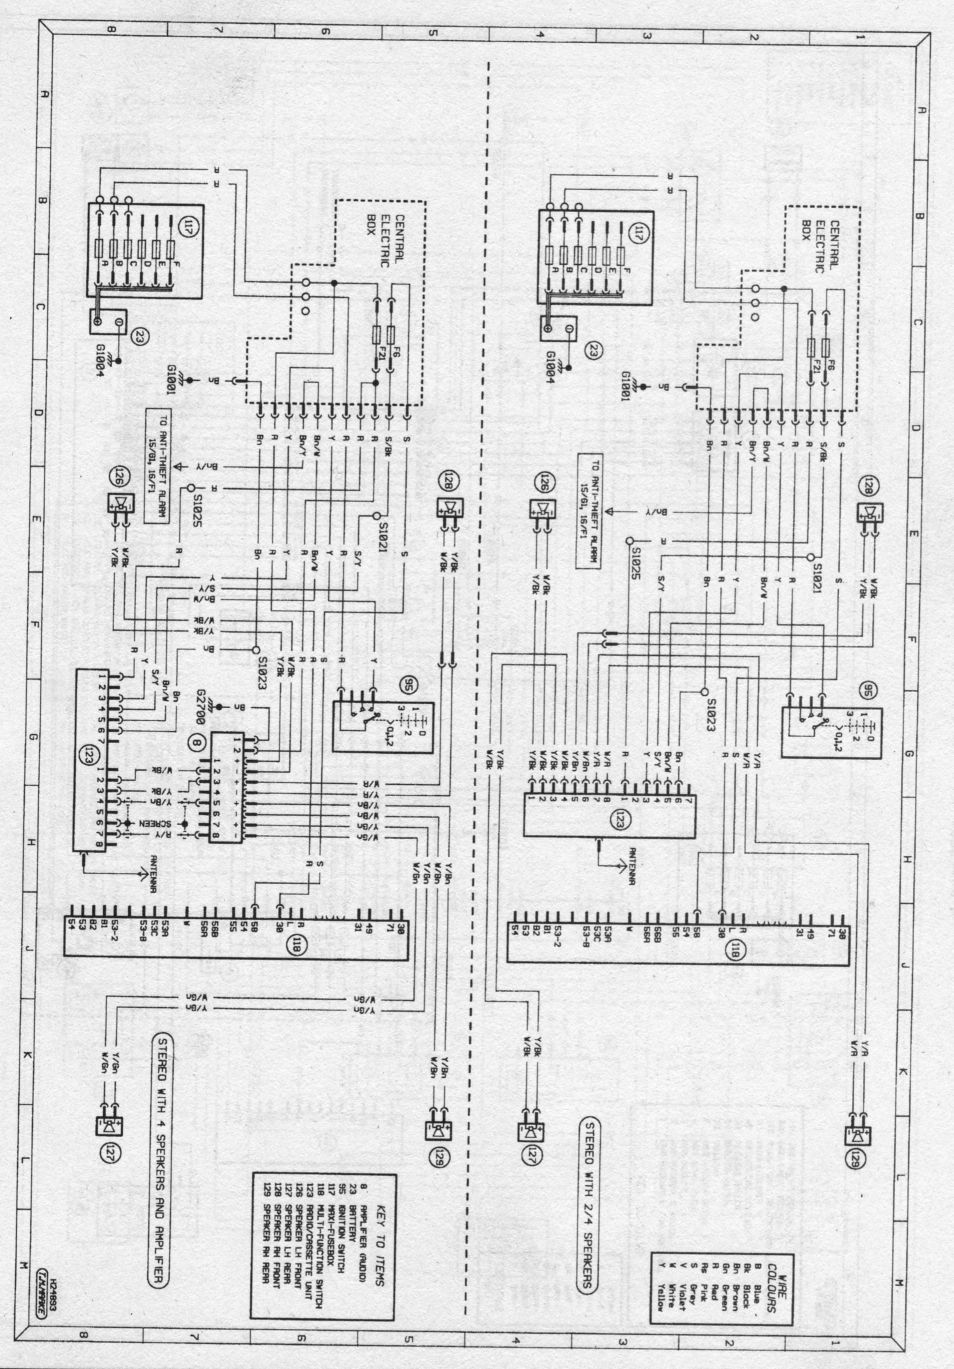 1990 Mk5 Wiring Diagram - Electrical Problems